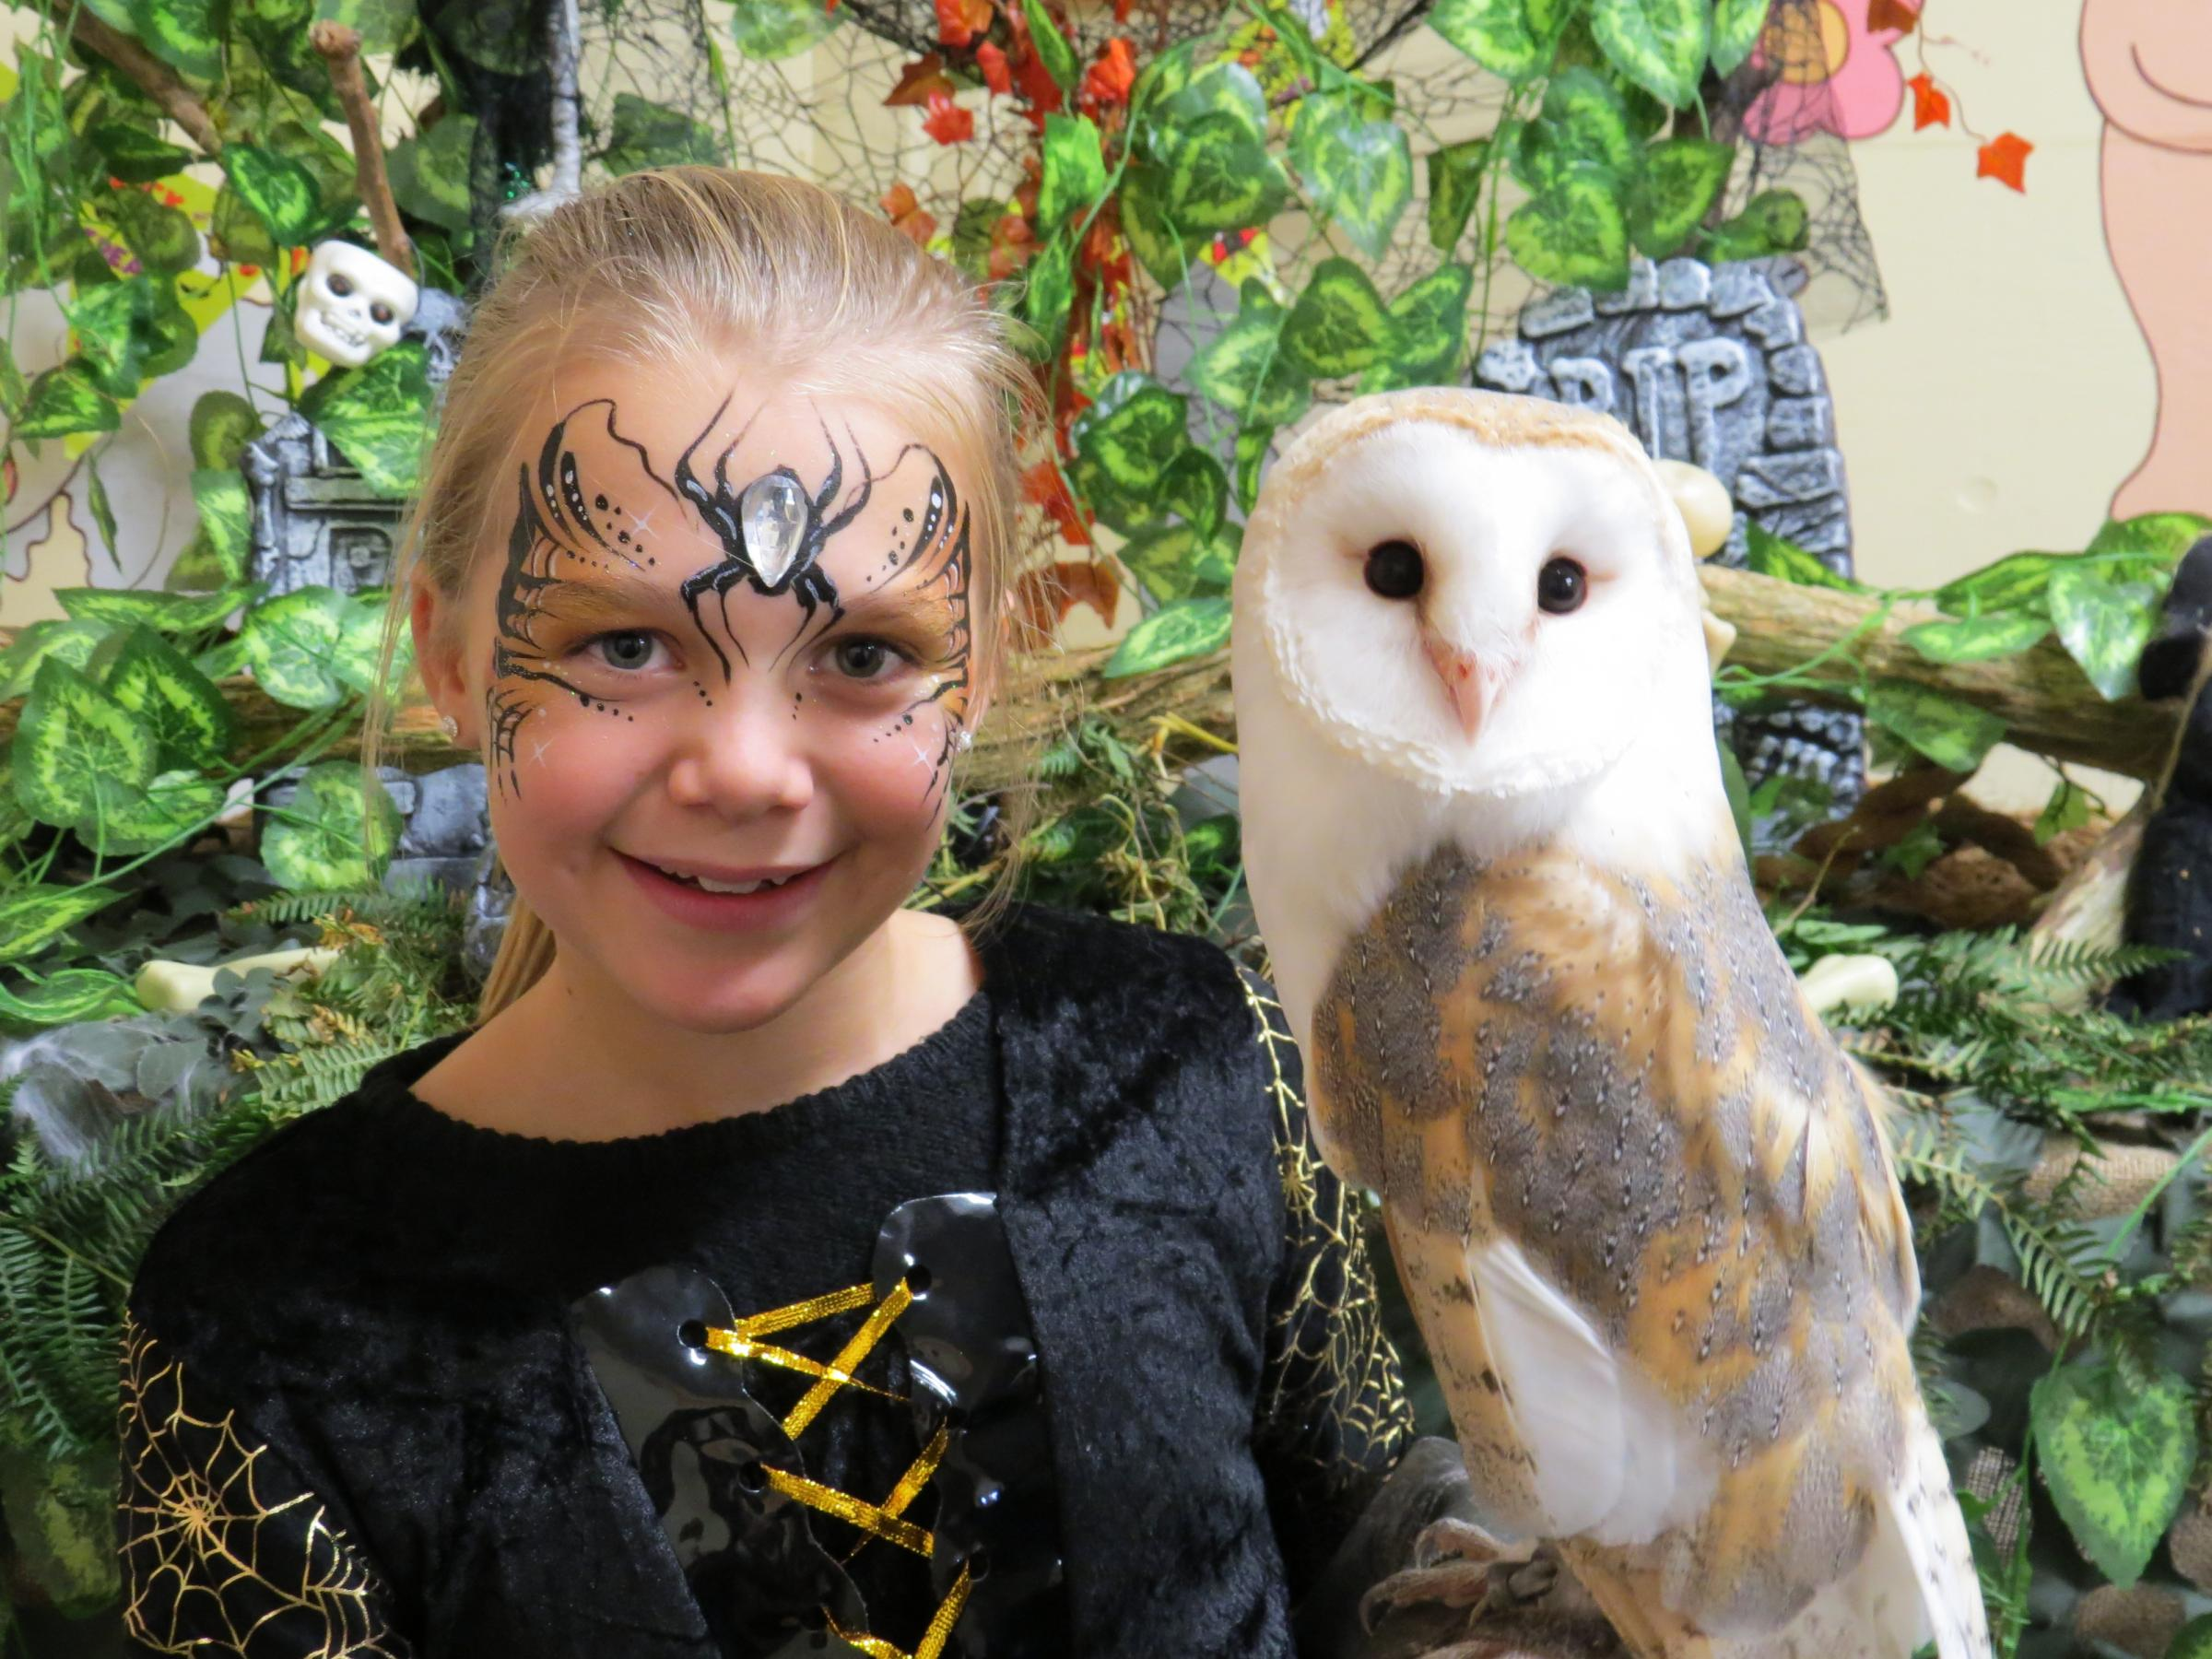 It's Frightfully Fun at the Farm This Autumn Half-Term